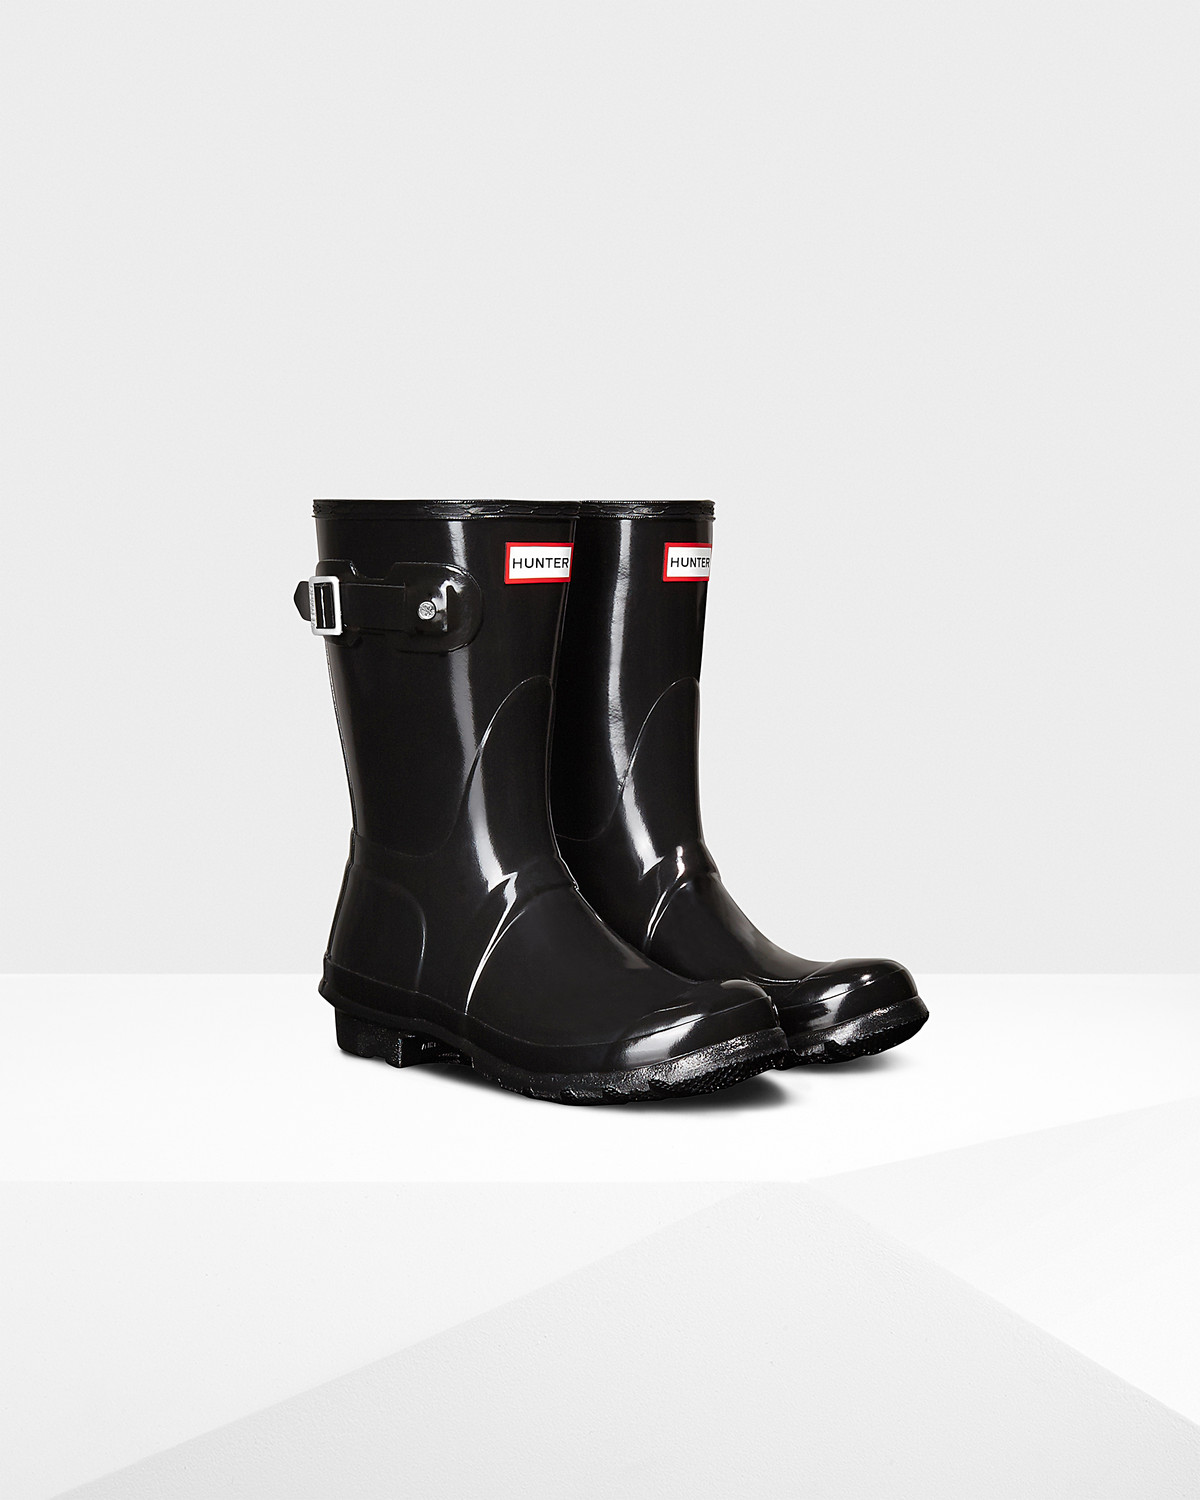 RR135 - Hunter Wellies